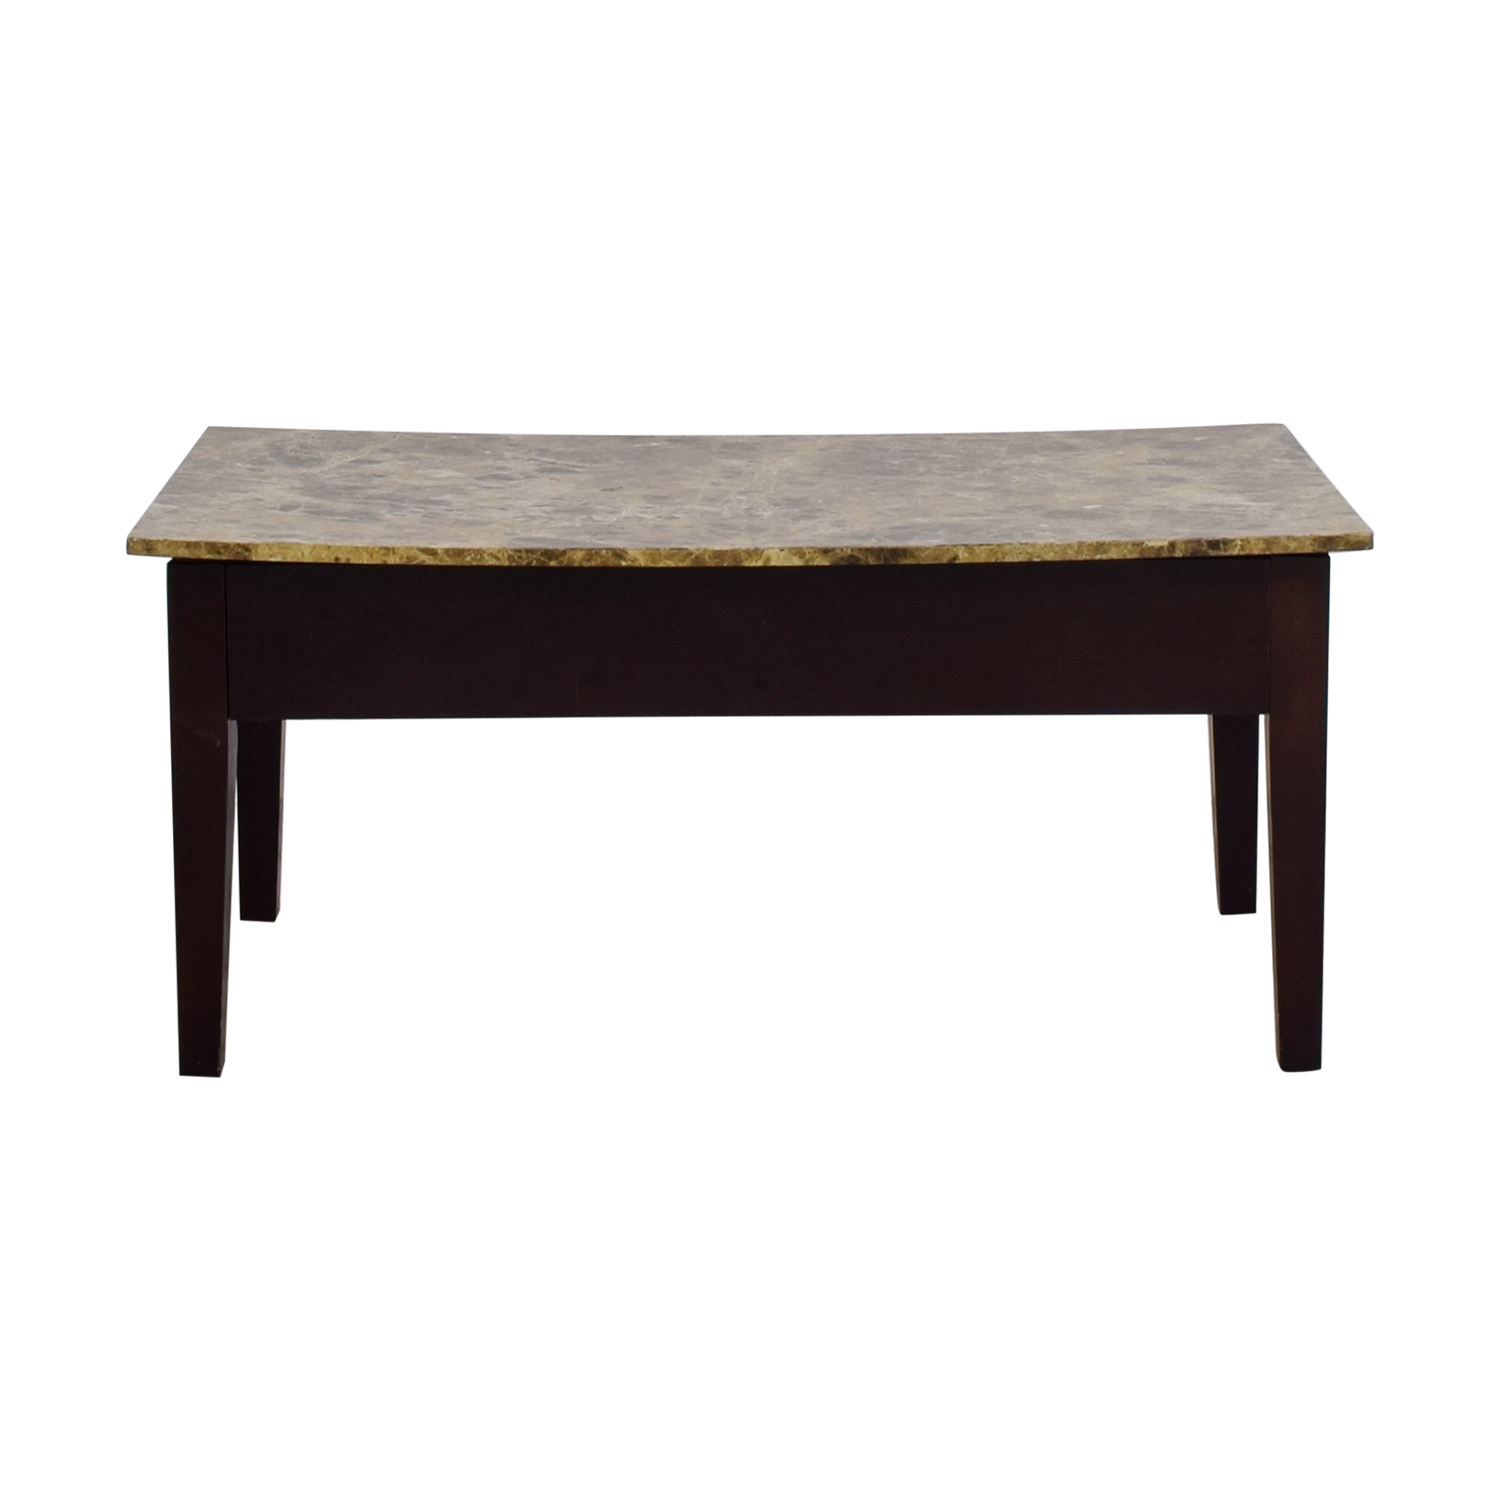 Faux Marble Top Coffee Table With Storage on sale